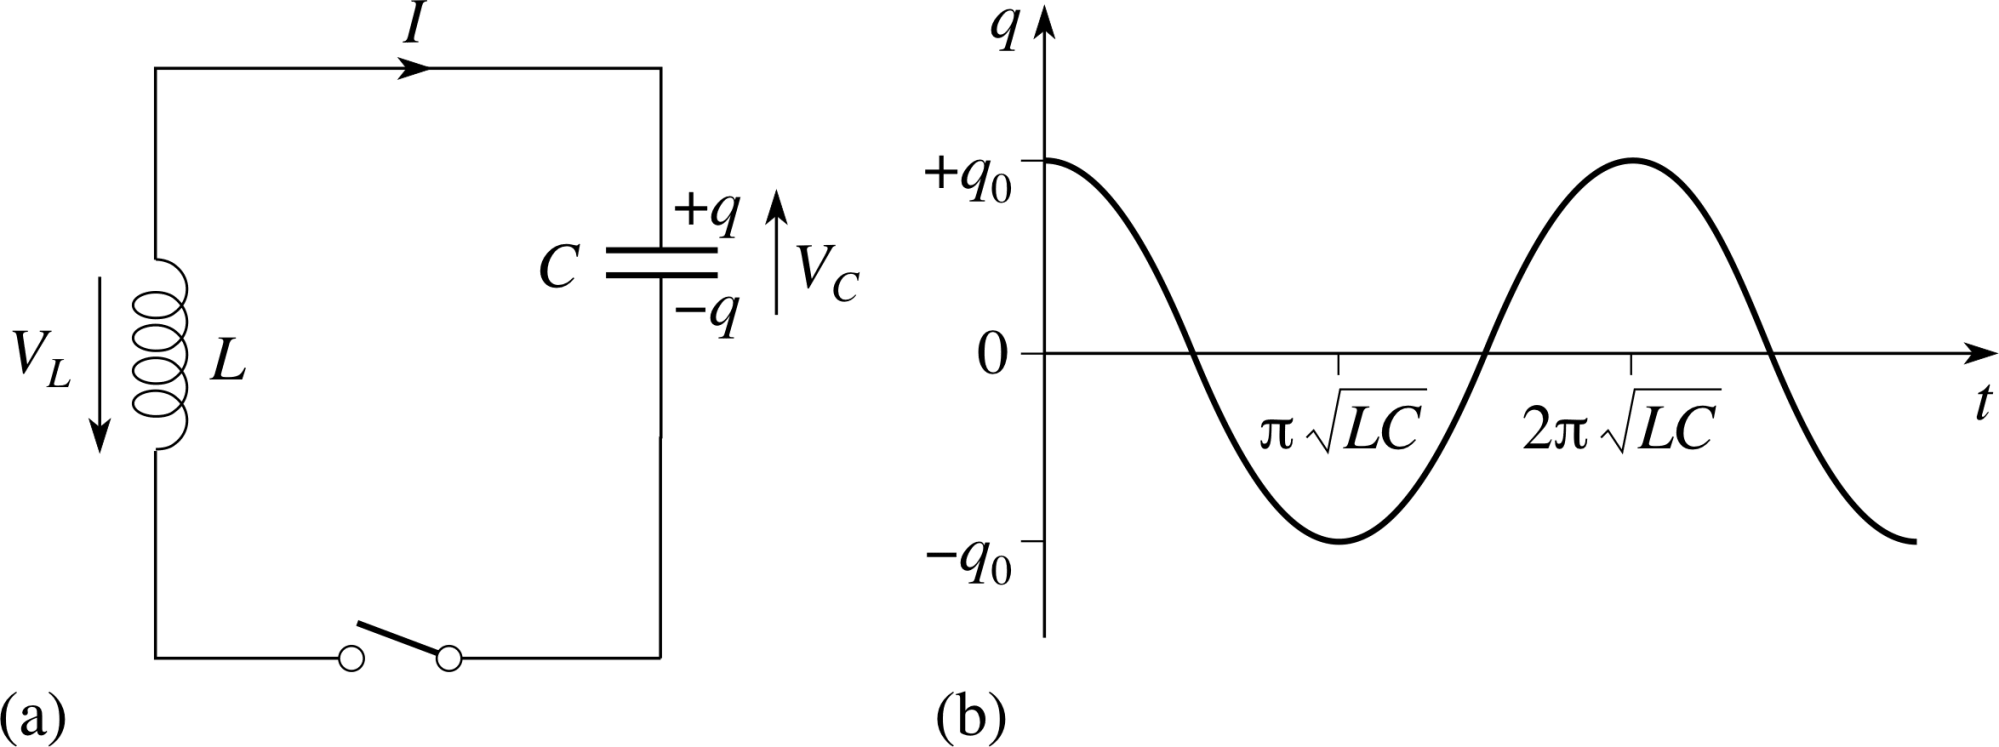 hight resolution of 3 3 oscillations in lc circuits